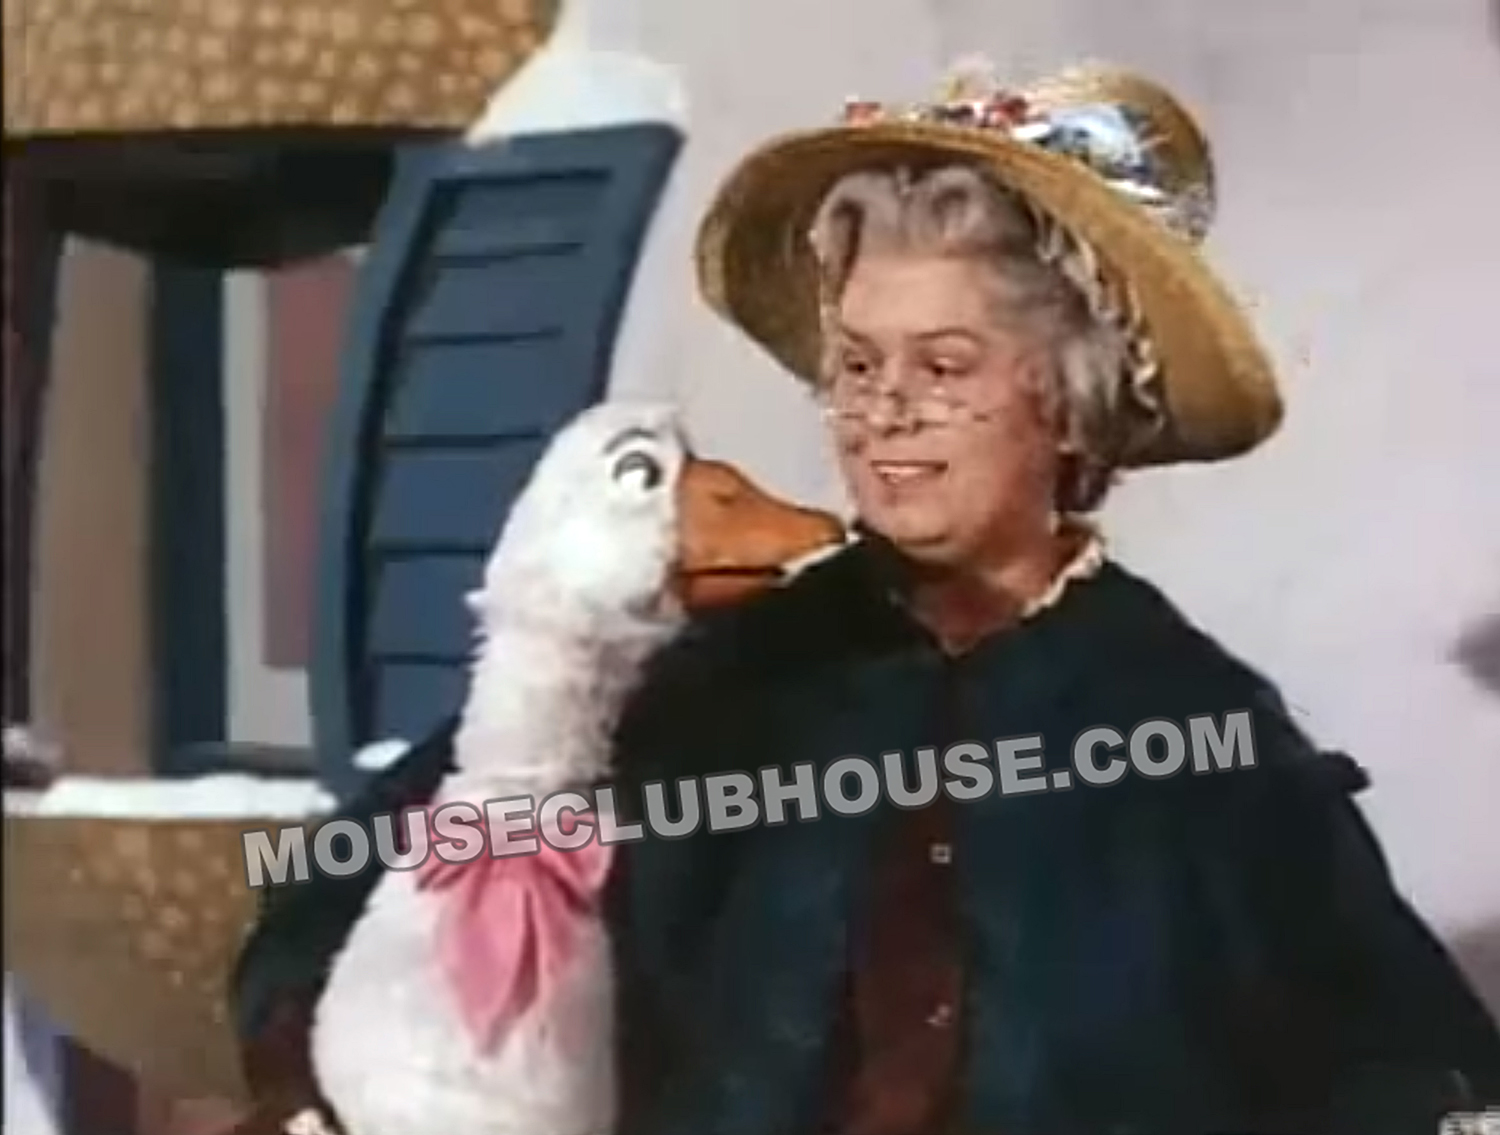 Mary McCarty appears as Mother Goose as Harriet operates her goose puppet for the close-up camera shots